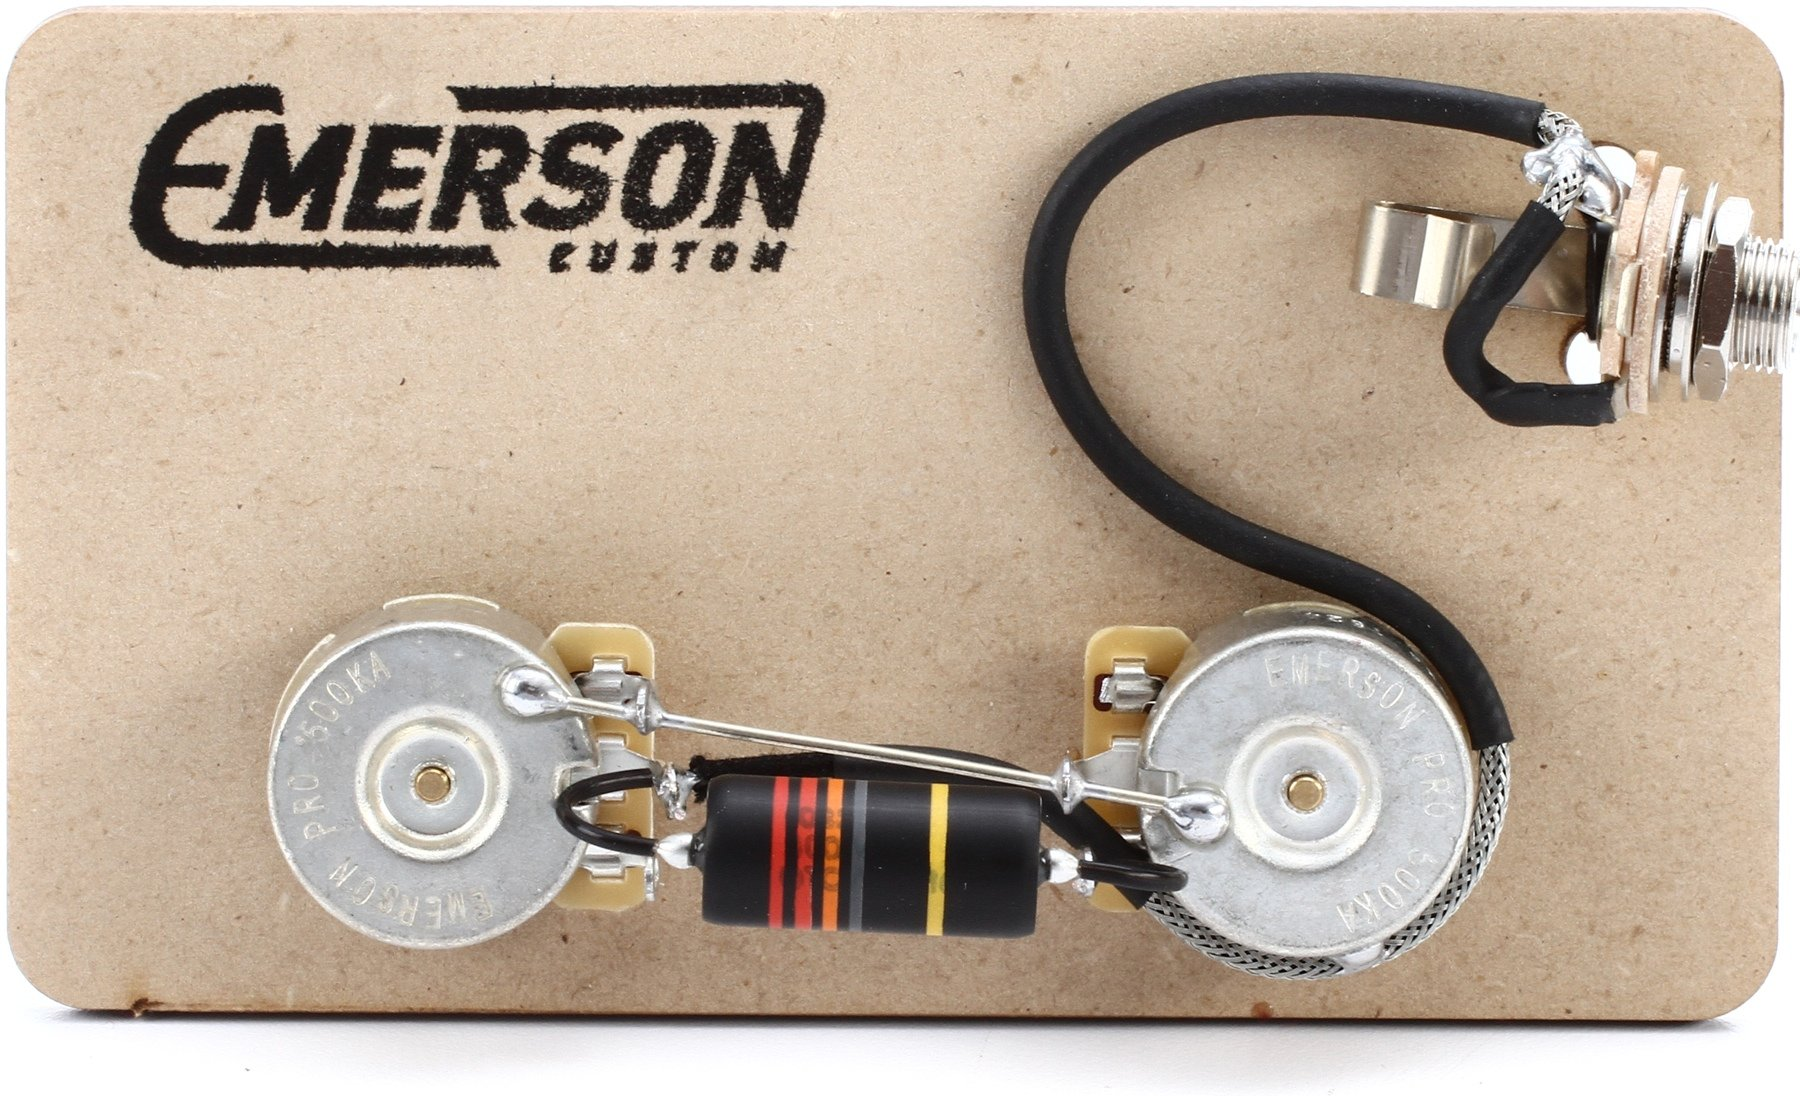 LPBBJR xlarge emerson custom prewired kit for gibson les paul junior sweetwater les paul junior wiring diagram at mifinder.co